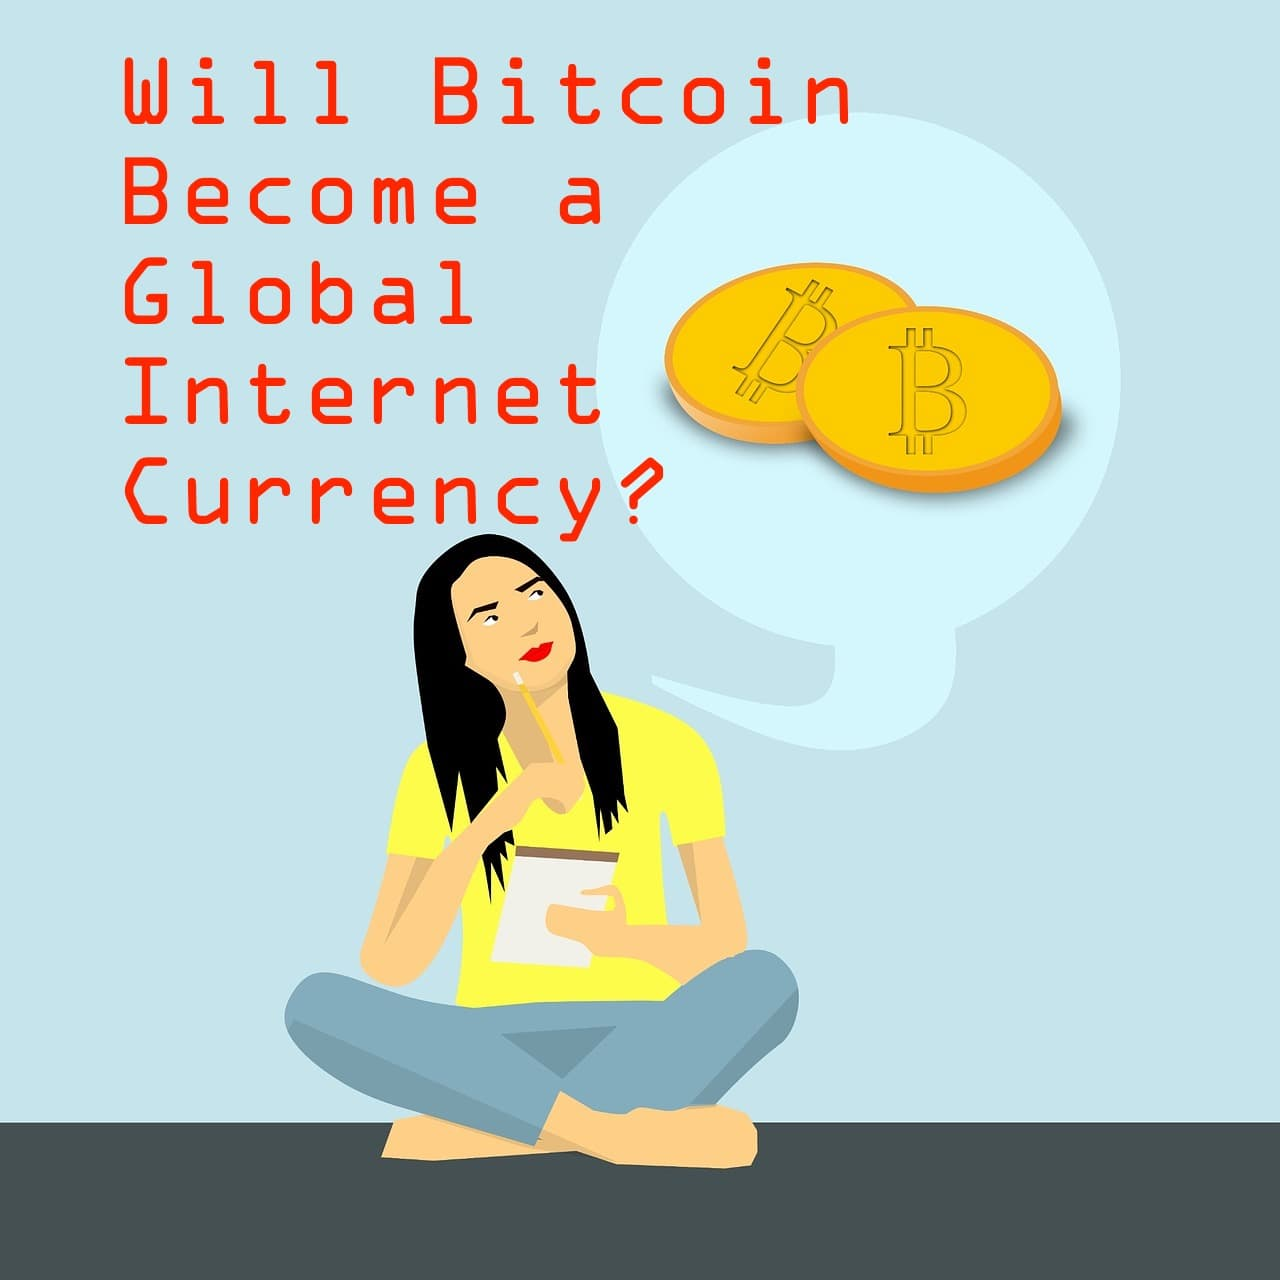 Will Bitcoin become a global internet currency?